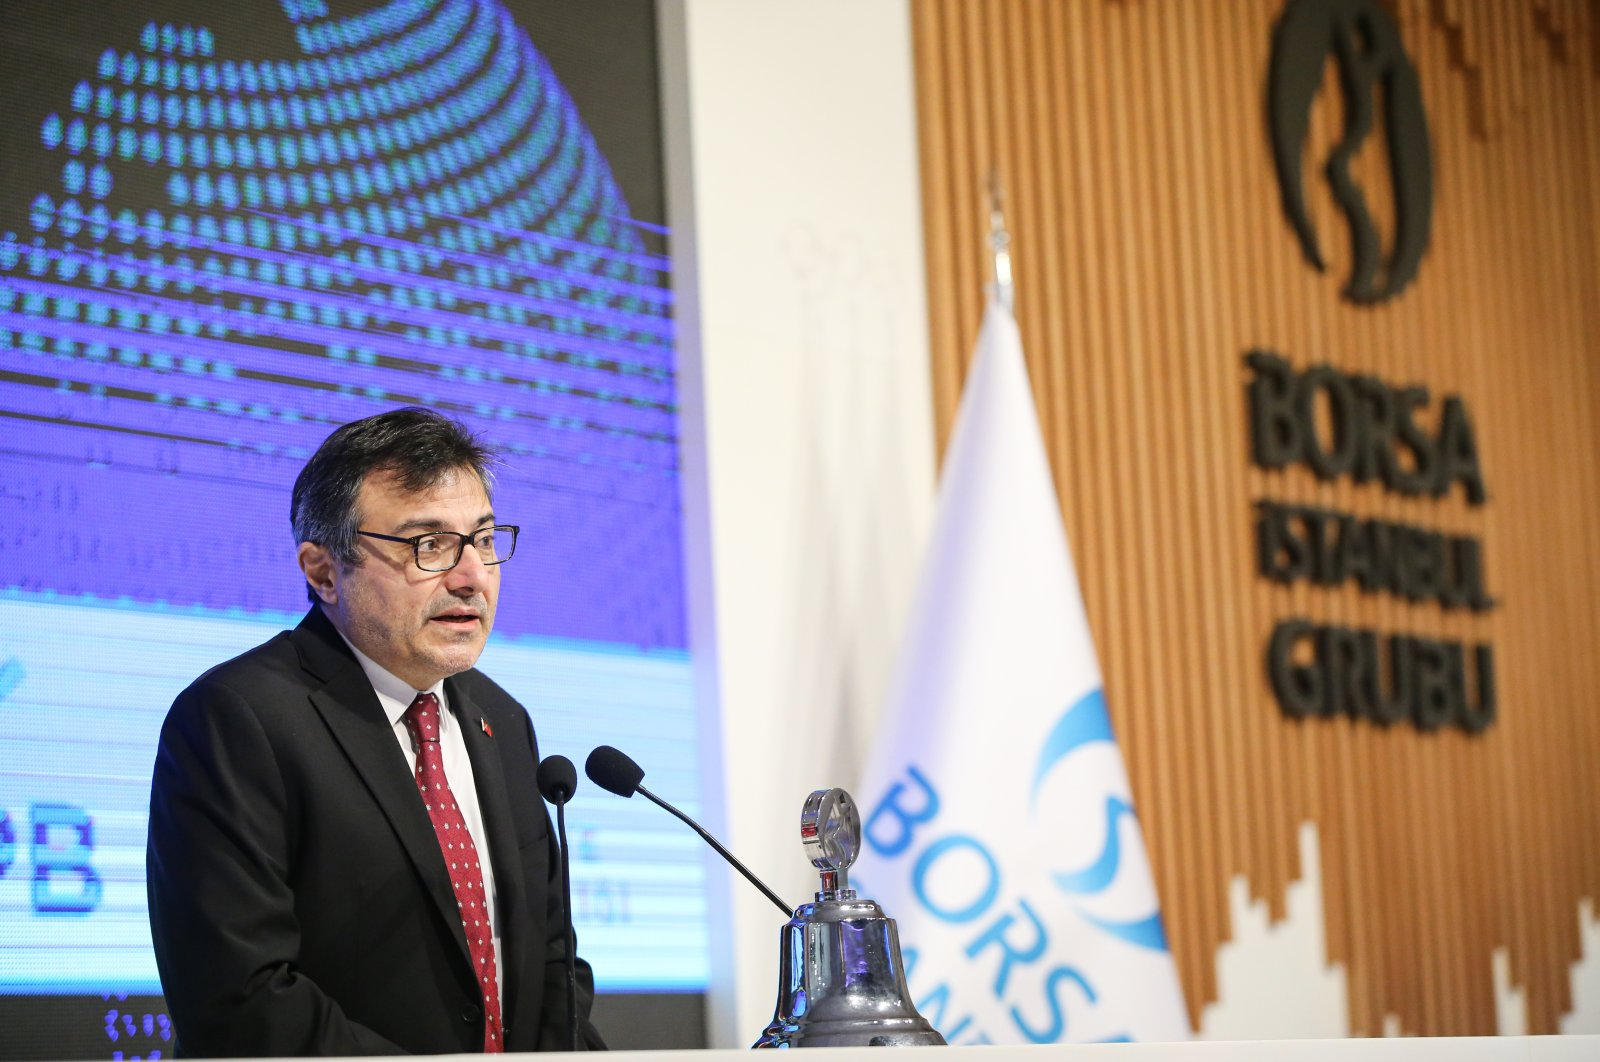 Göksel Asan, head of the presidency's Finance Office, delivers a speech at the World Investor Day in Istanbul, Turkey, Nov. 16, 2020. (AA Photo)